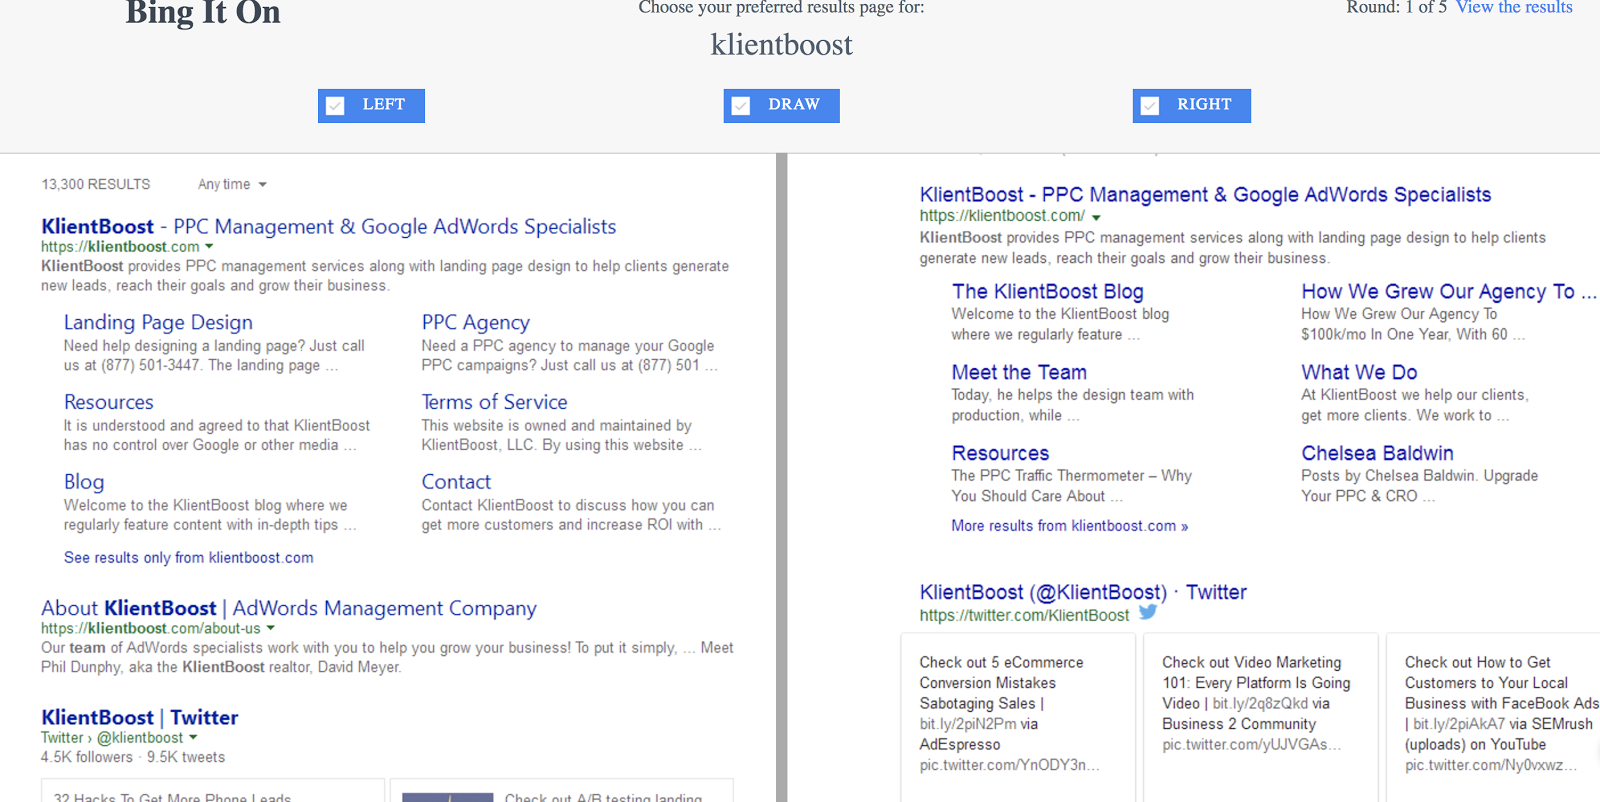 Bing search ads. Which do you prefer?